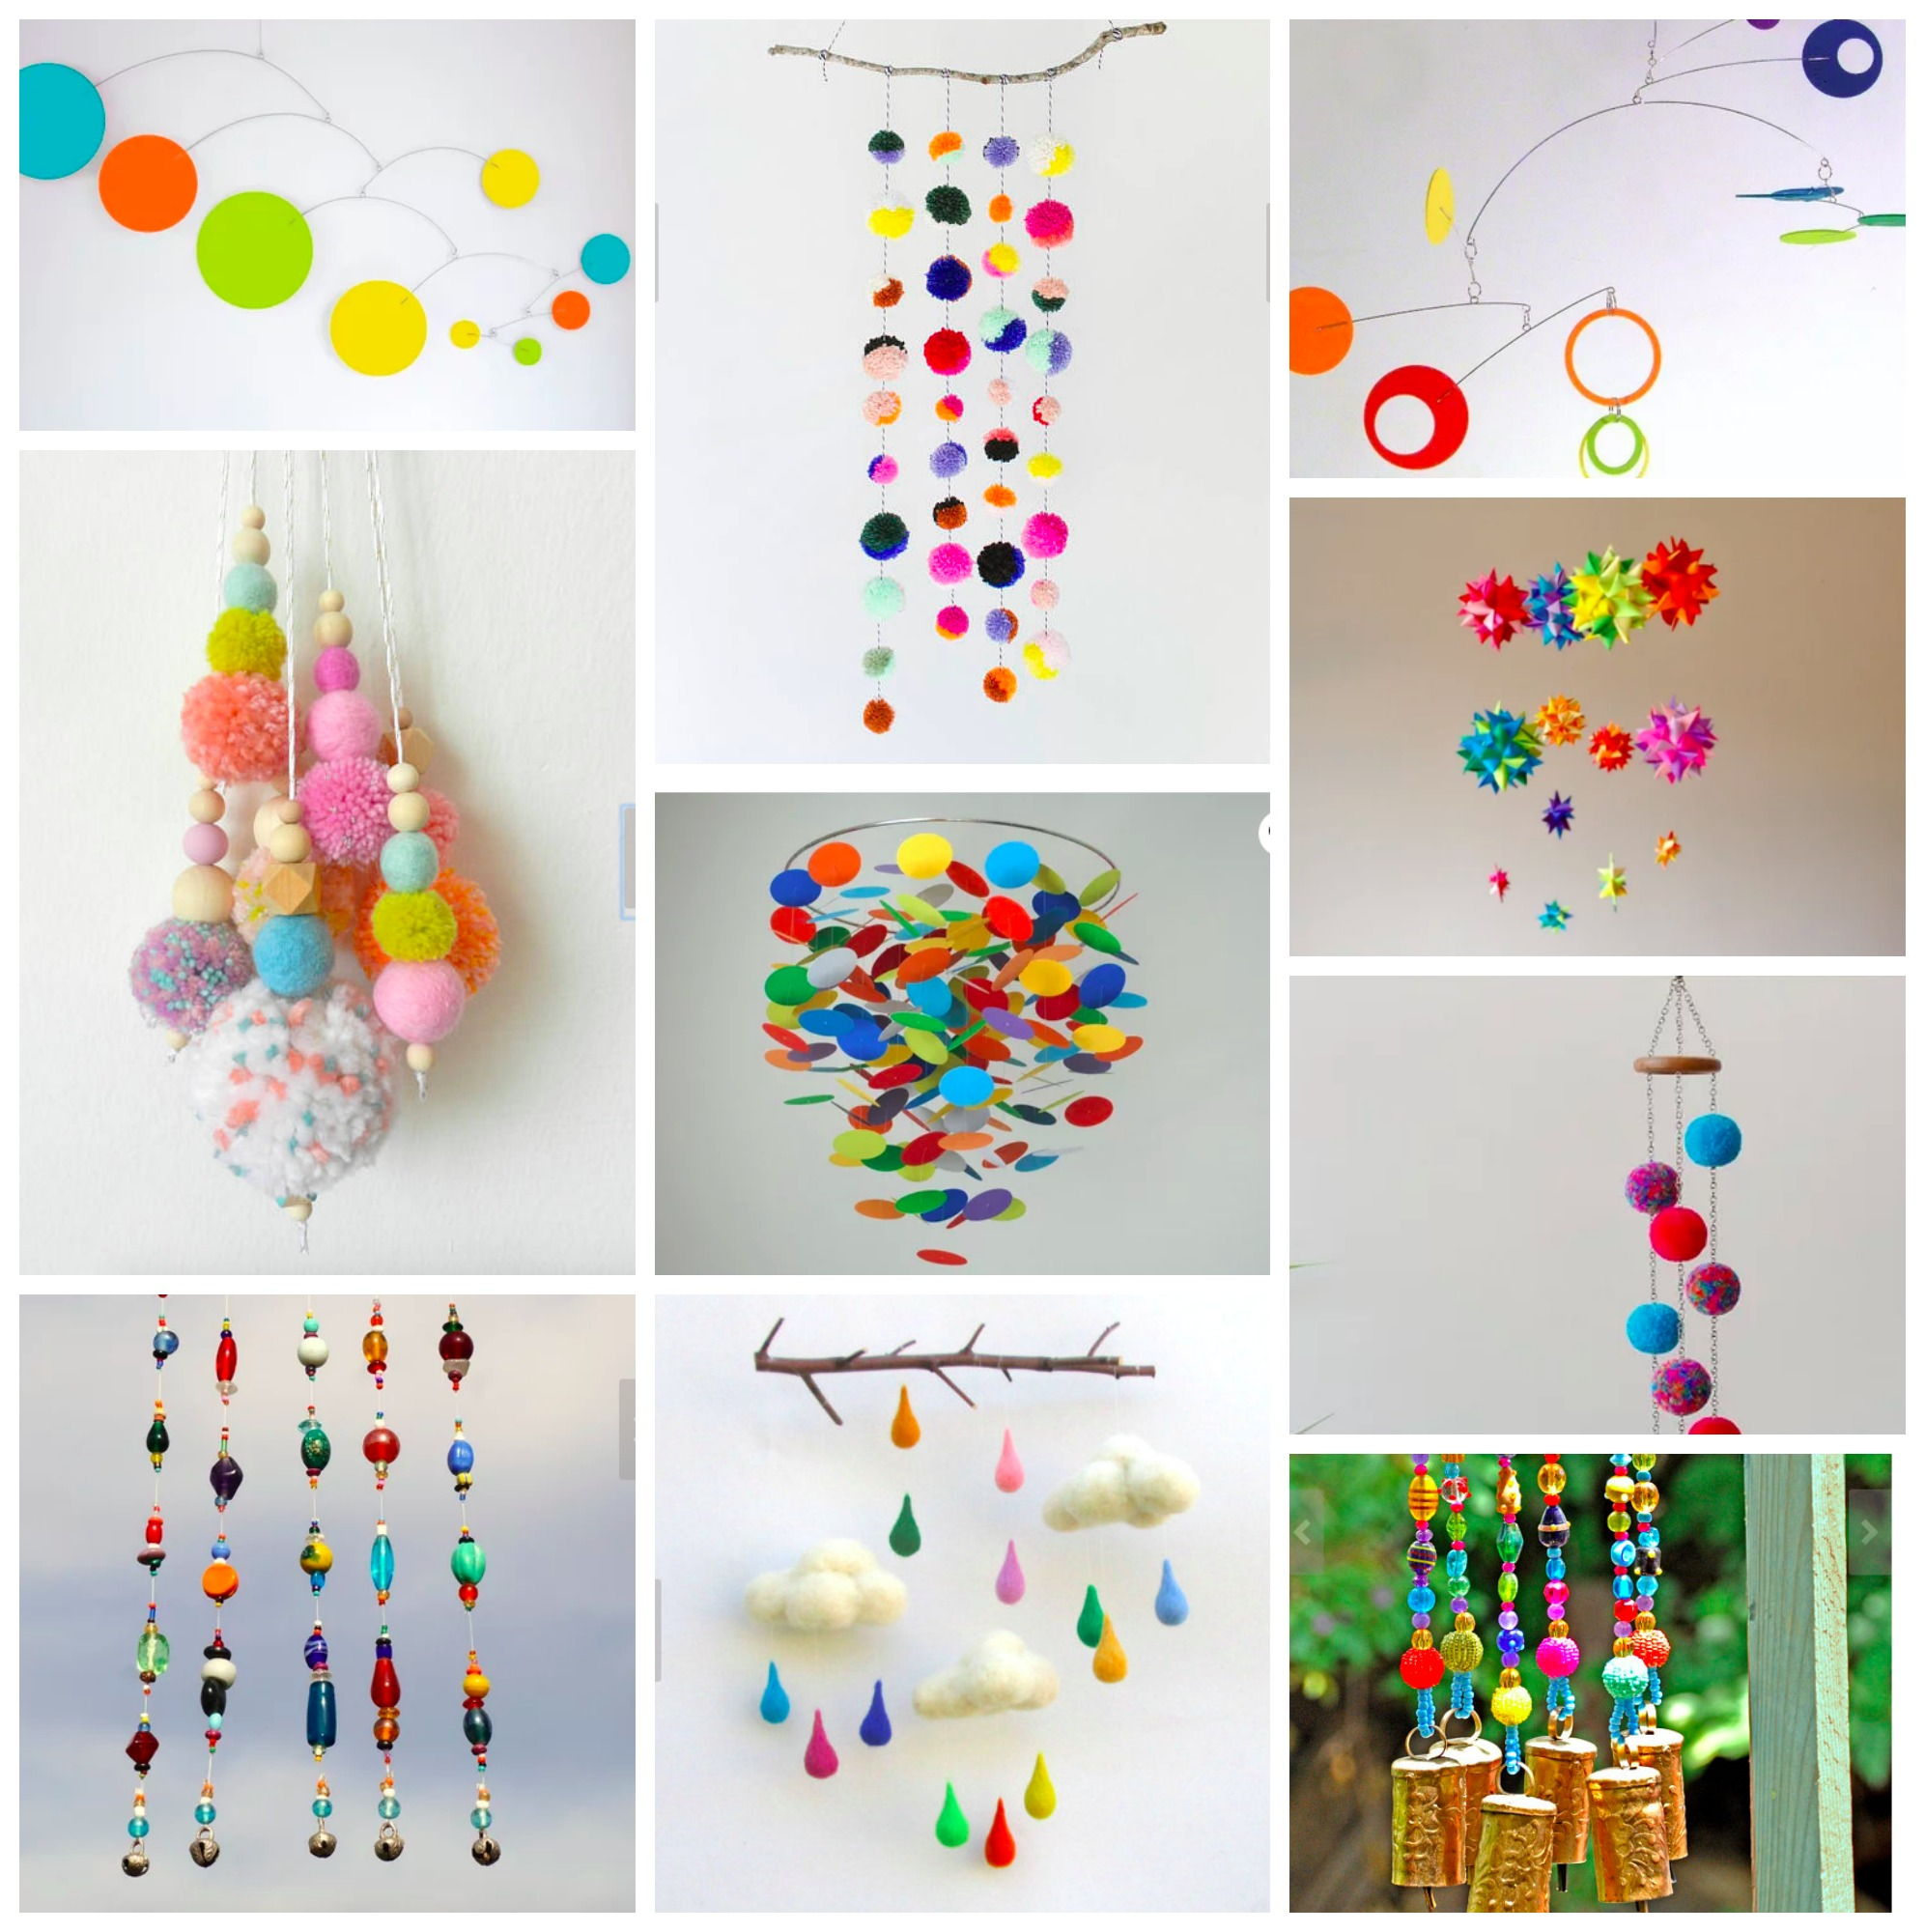 Top 10: Most Colorful and Unique Mobiles On Etsy For Your Home Or Kids Room